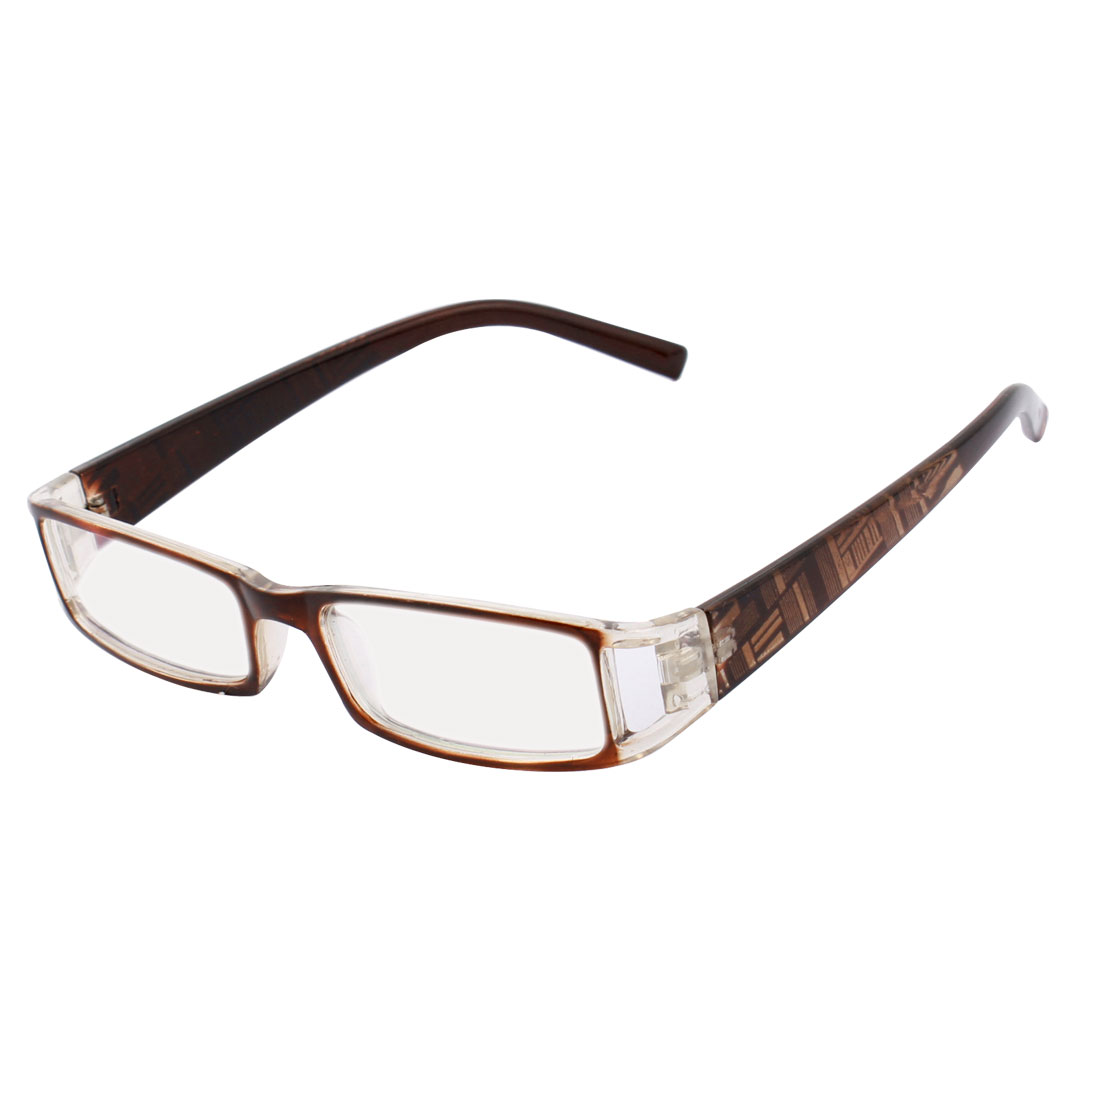 Lady Multi Coated Lens Full Rim Plastic Arm Plano Glasses Eyewear